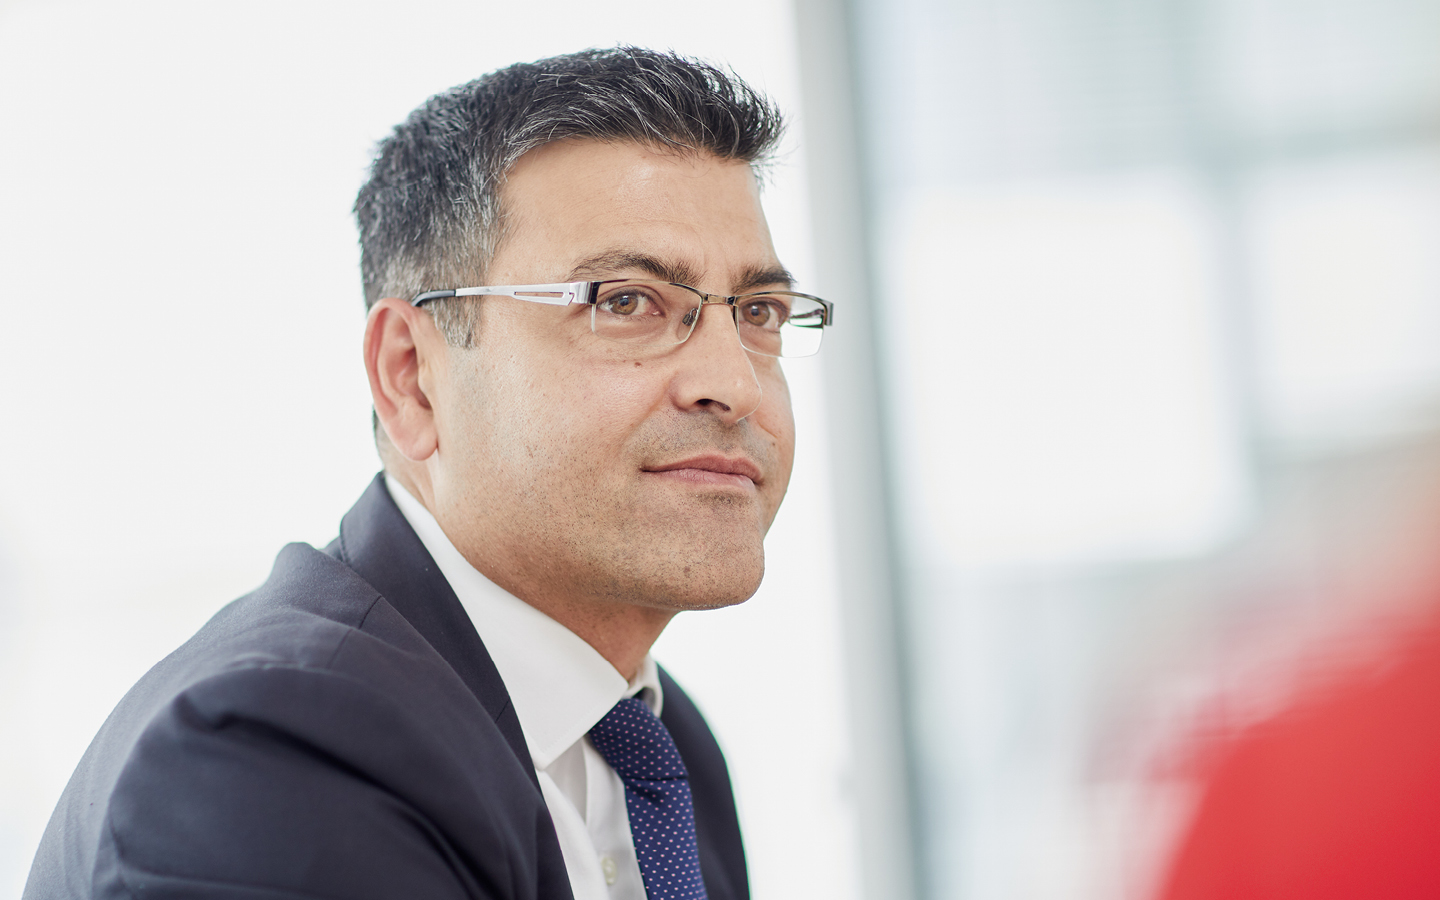 Man with suit and glasses listening to colleague